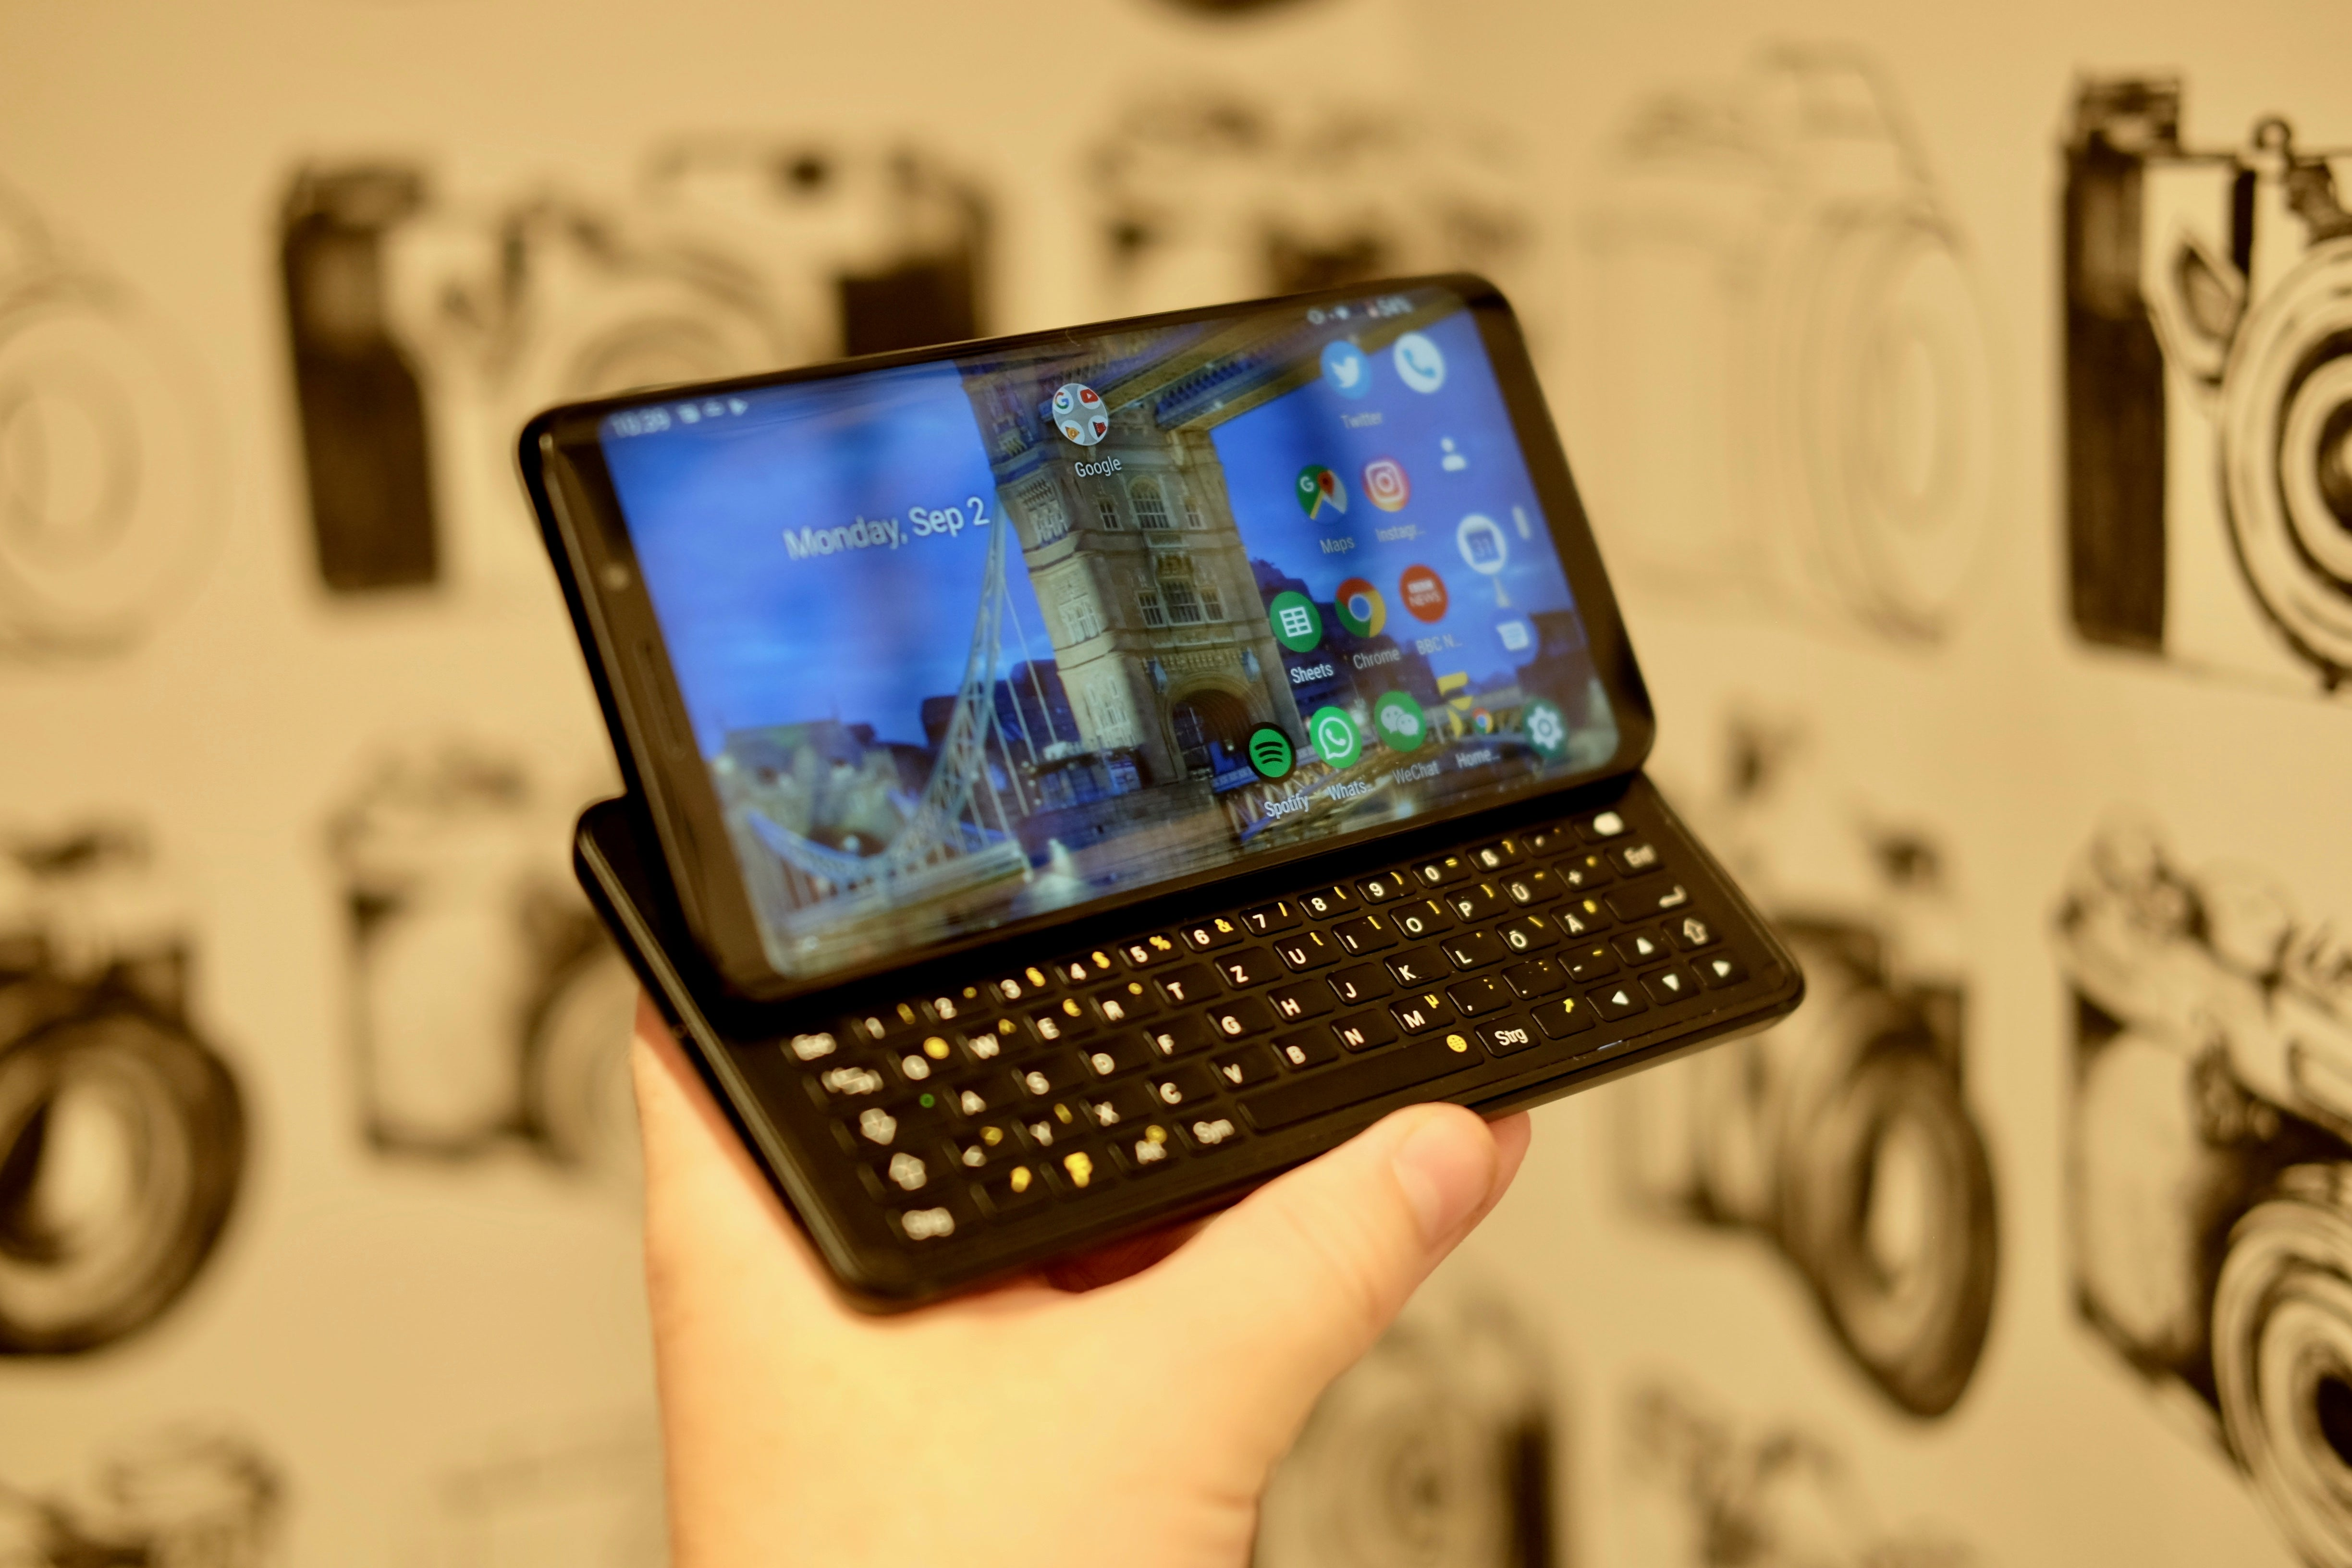 This keyboard-packing Android phone is one of the most interesting things at IFA 2019